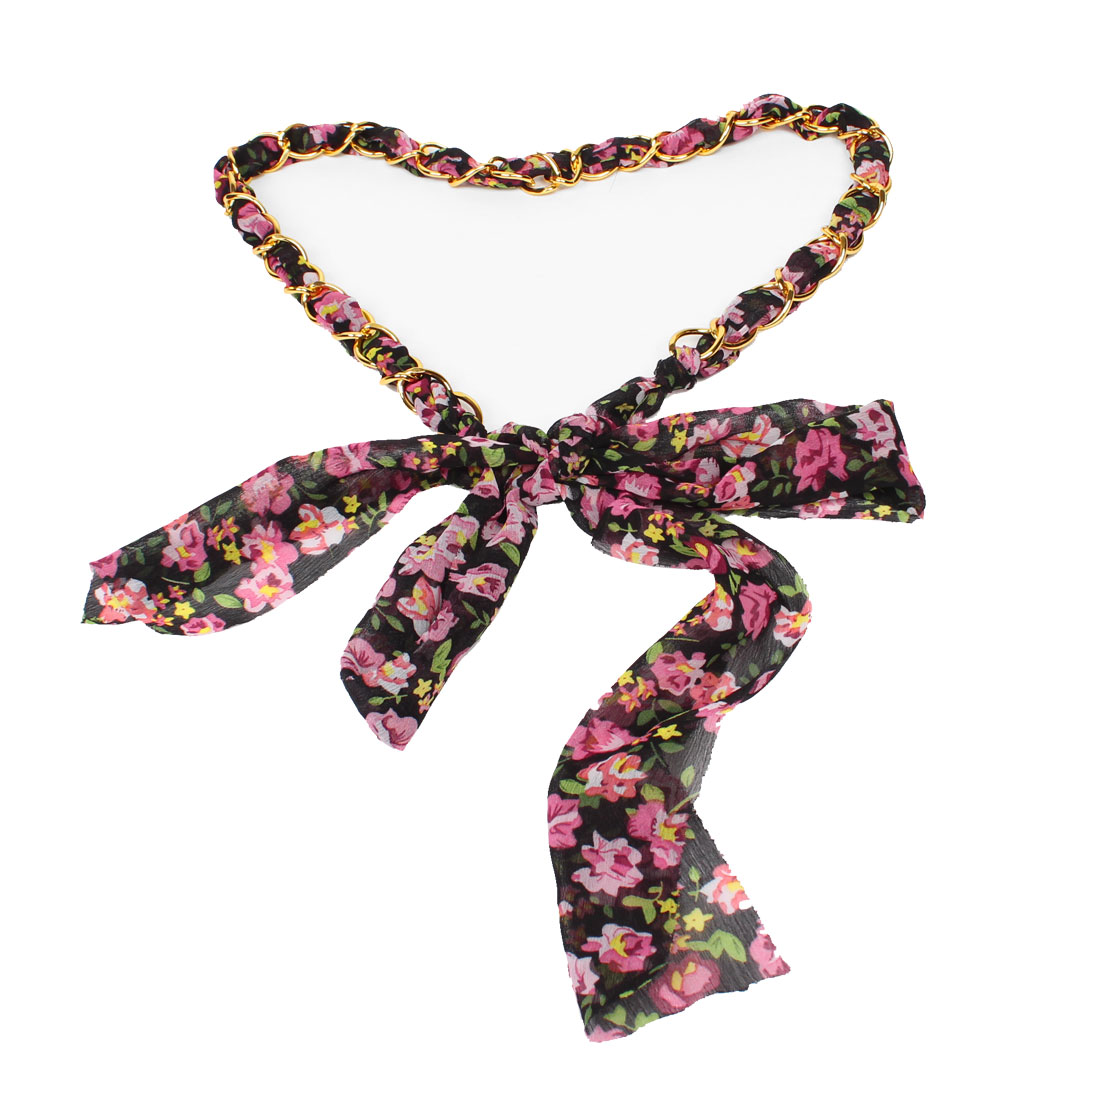 Ladies Gold Tone Chain Black Green Pink Floral Pattern Chiffon Self Tie Belt